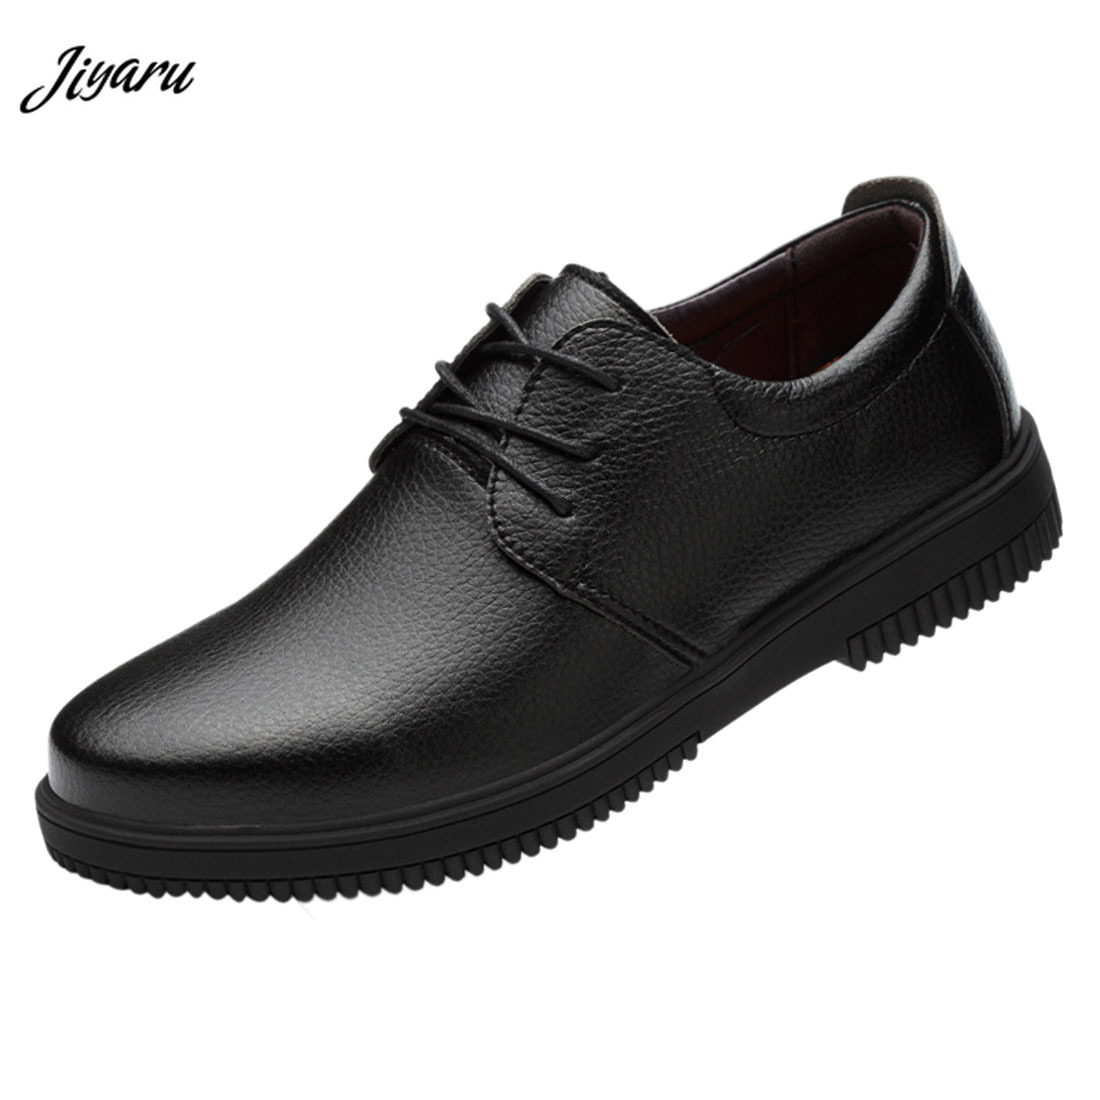 Kitchen Work Shoes: 2018 New Arrival Professional Chef Work Anti Slip Shoes